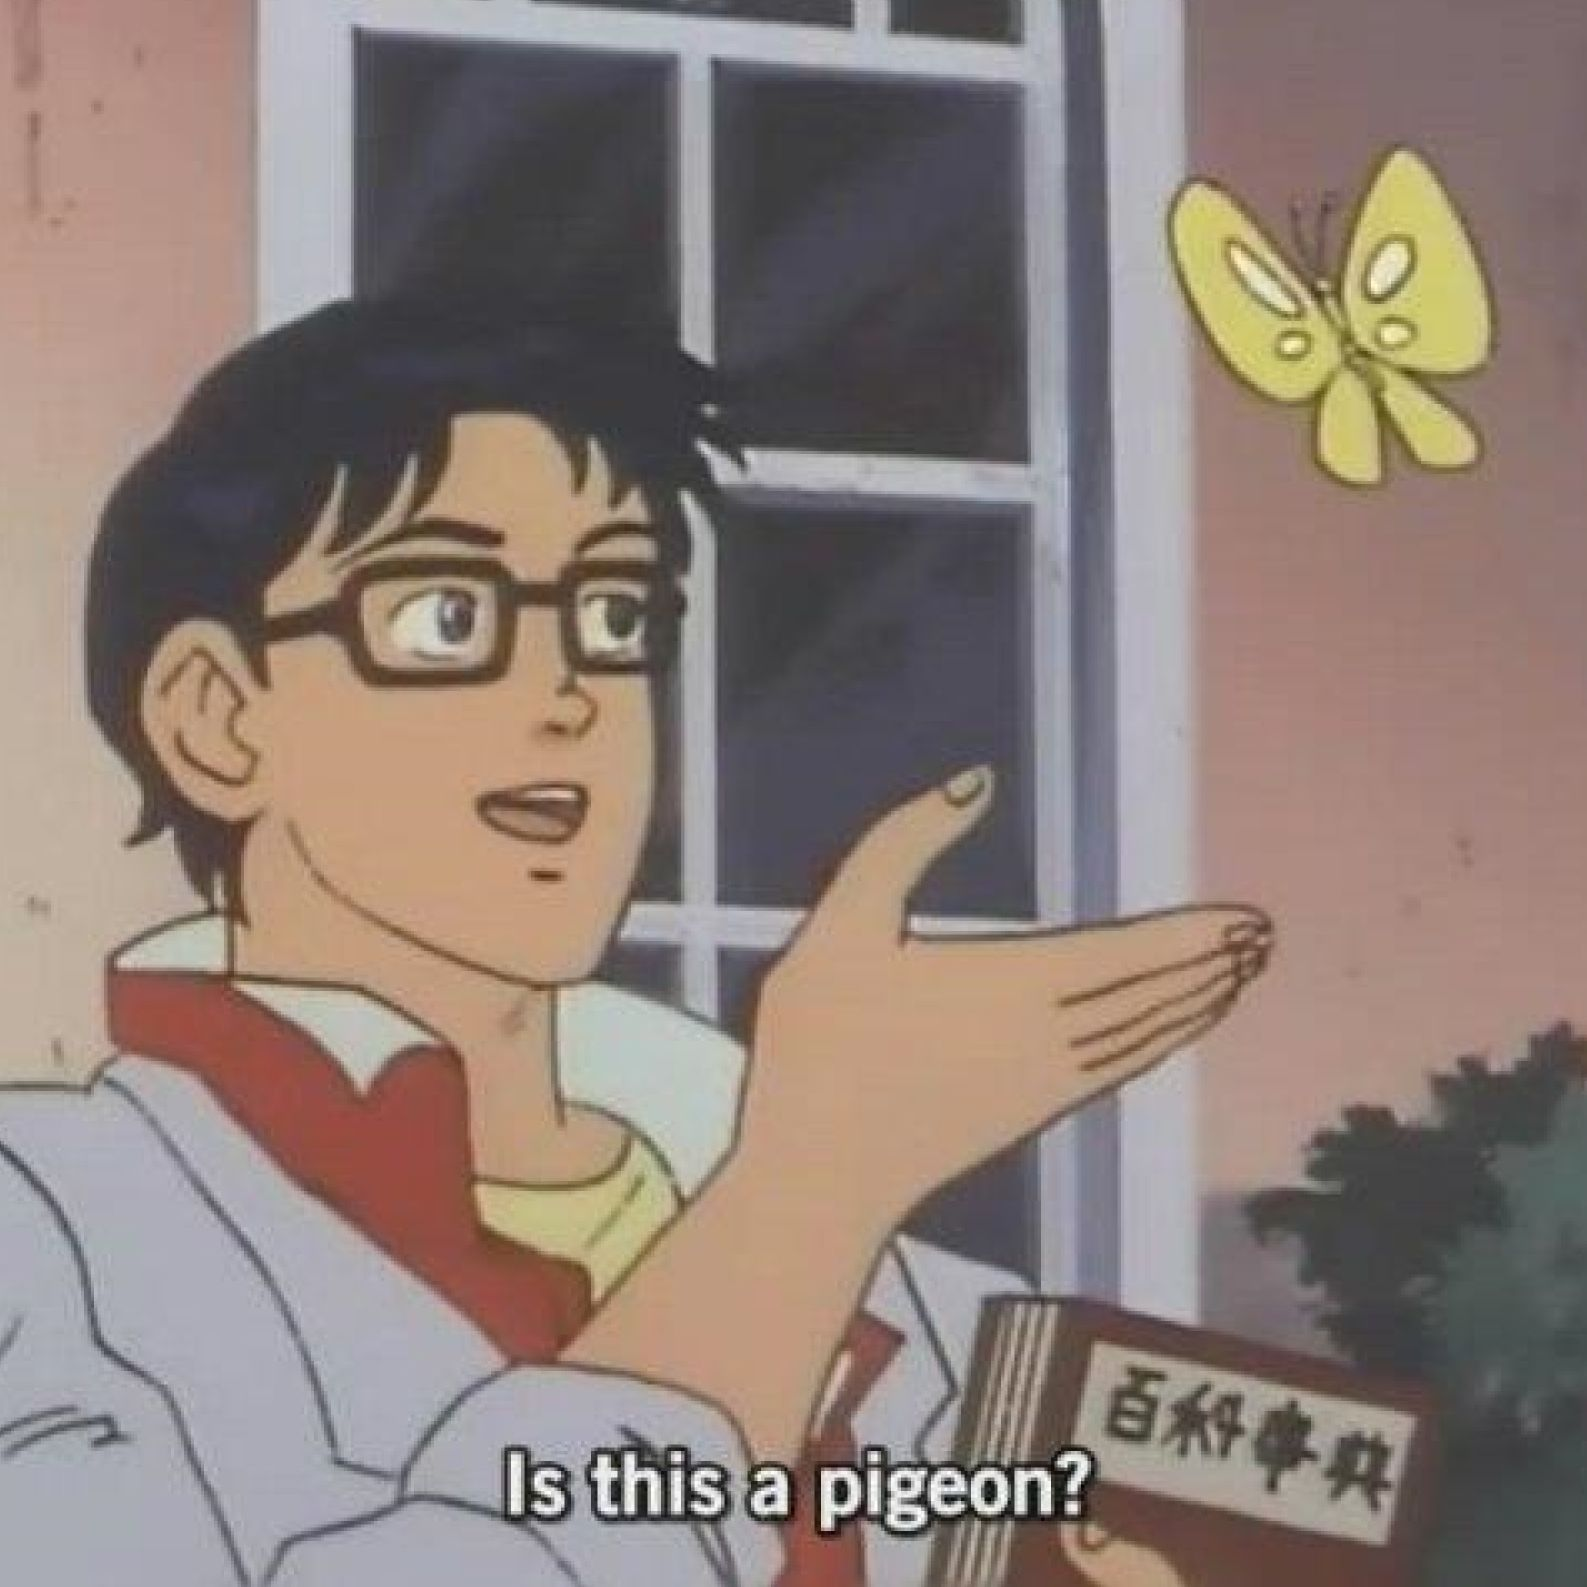 Is this a pigeon? anime Meme  Meme Template Thumbnail